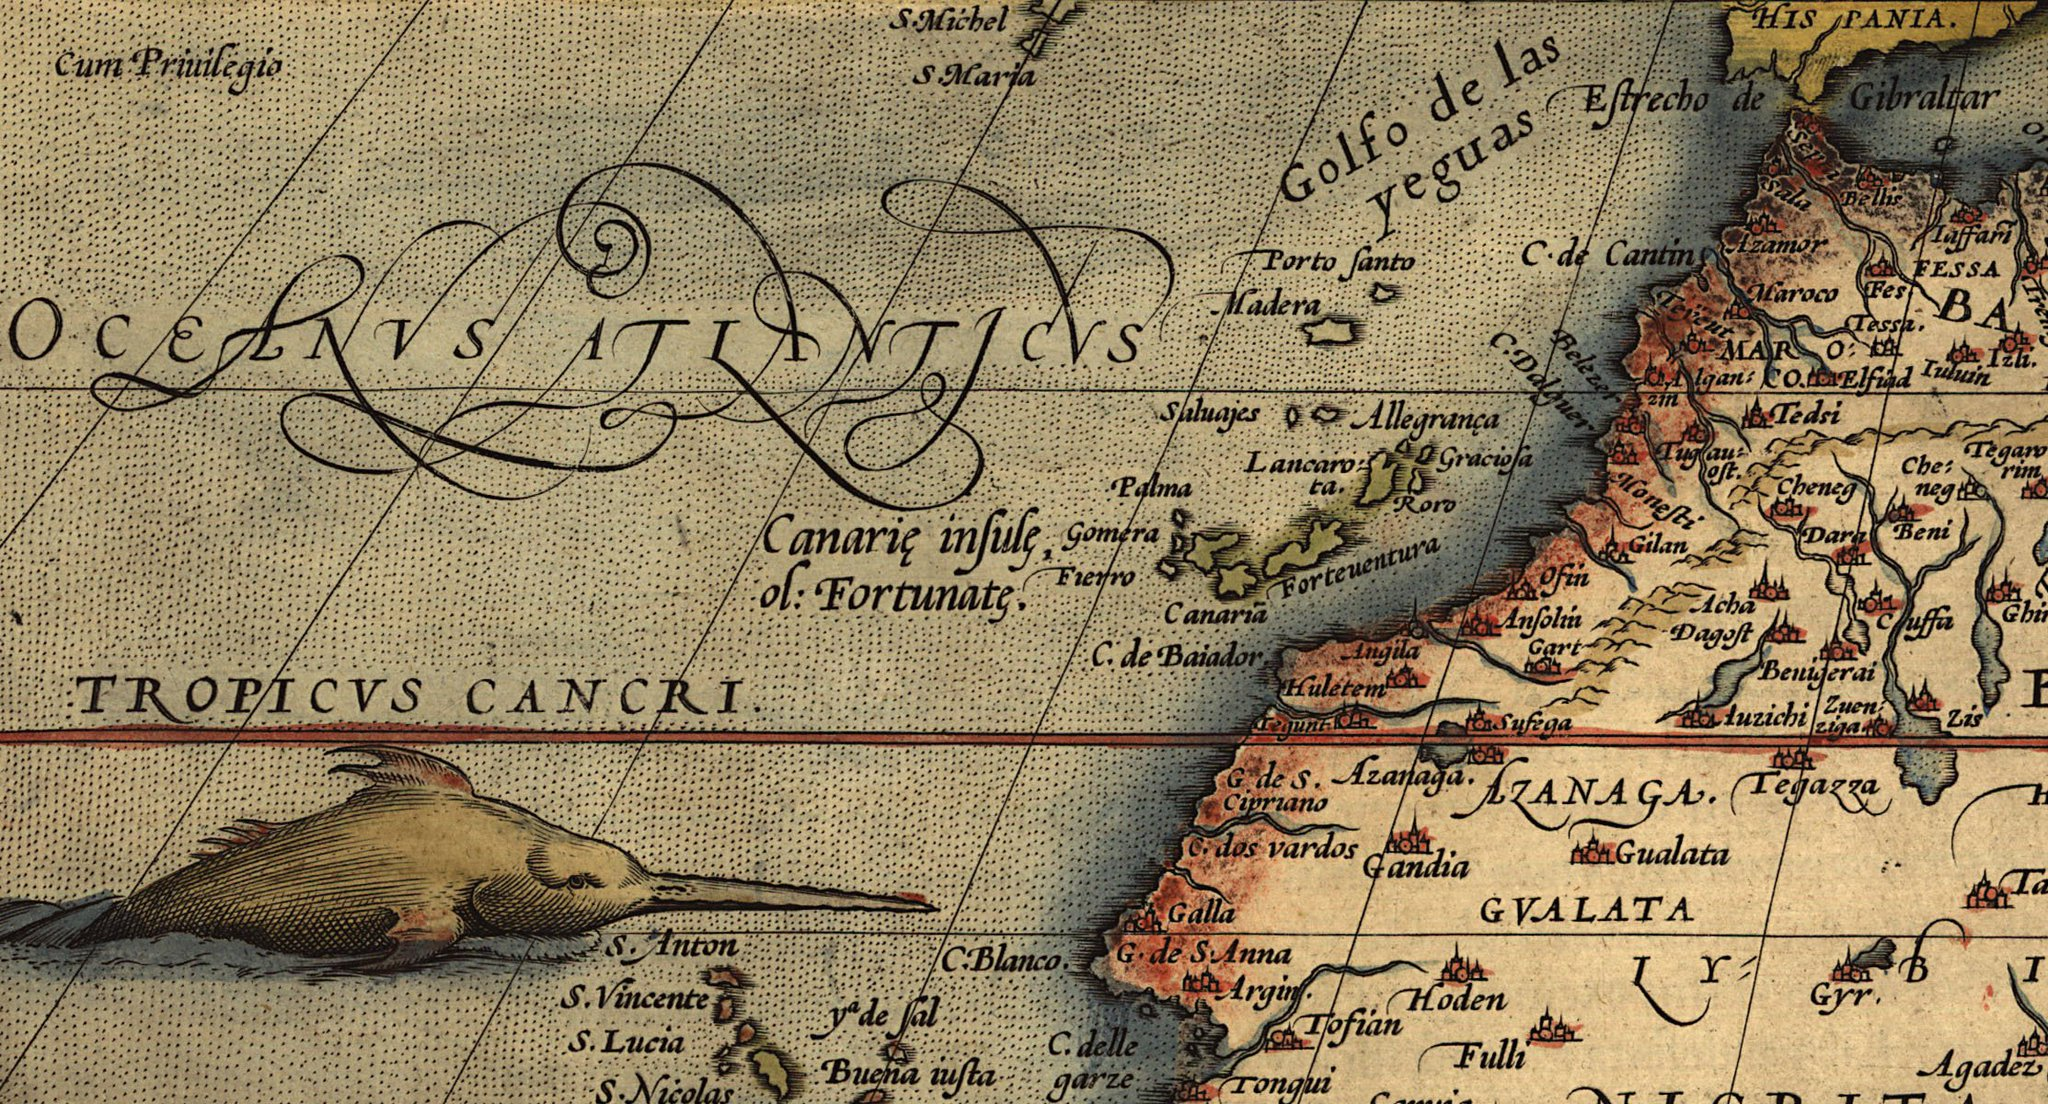 Henry the Navigator sent expeditions down the west coast of Africa in the mid-1400s to learn about what lay south of Cape Bojador, Morocco. https://t.co/2EiK252nNn